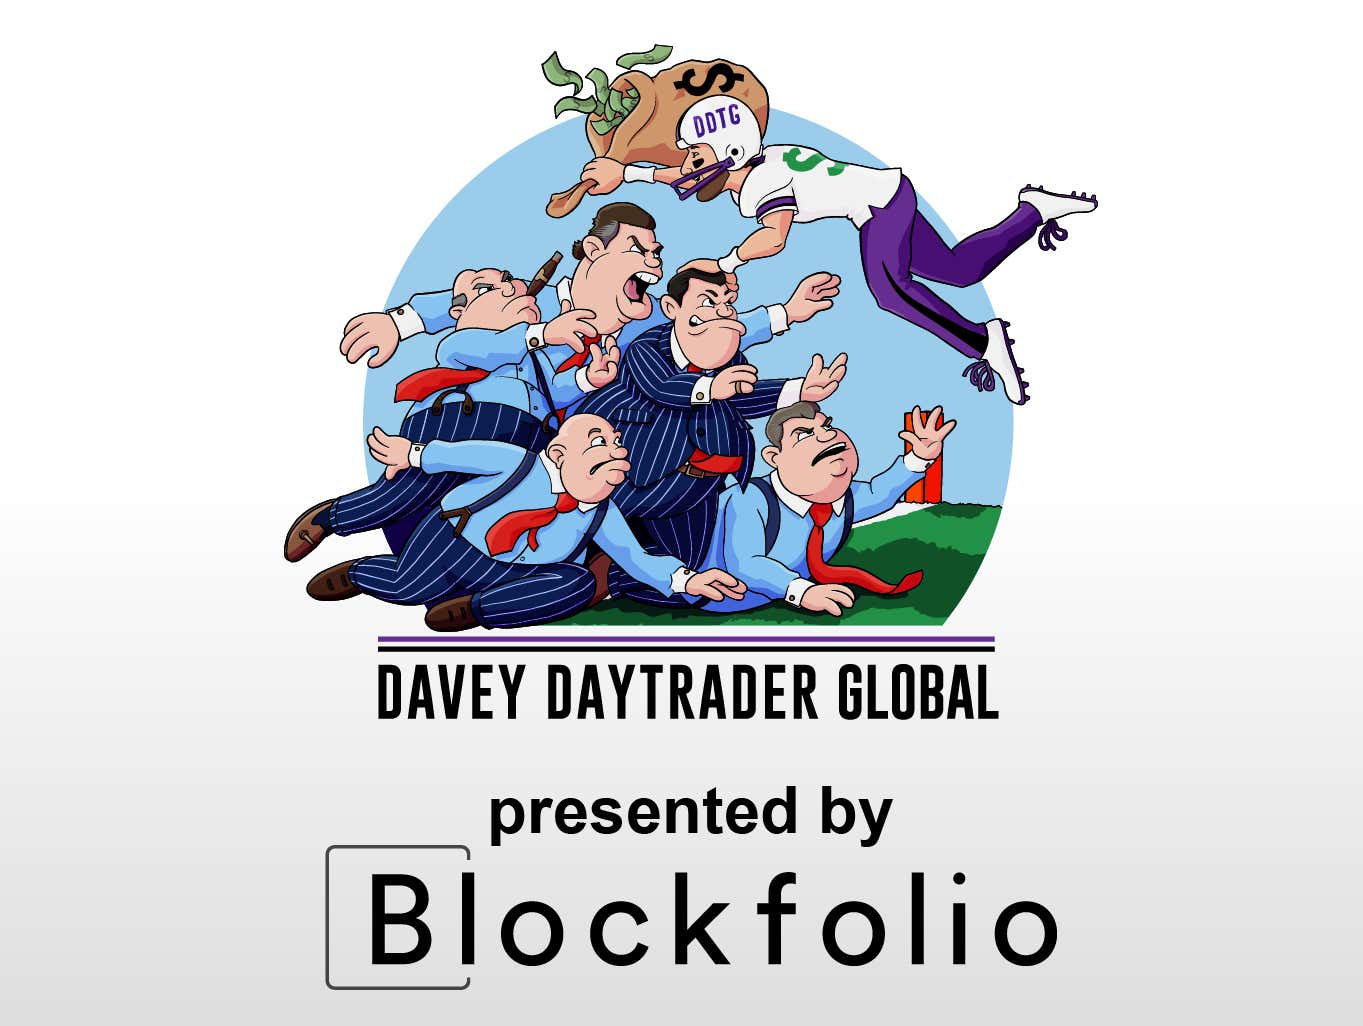 Davey Day Trader presented by Blockfolio - May 12, 2021